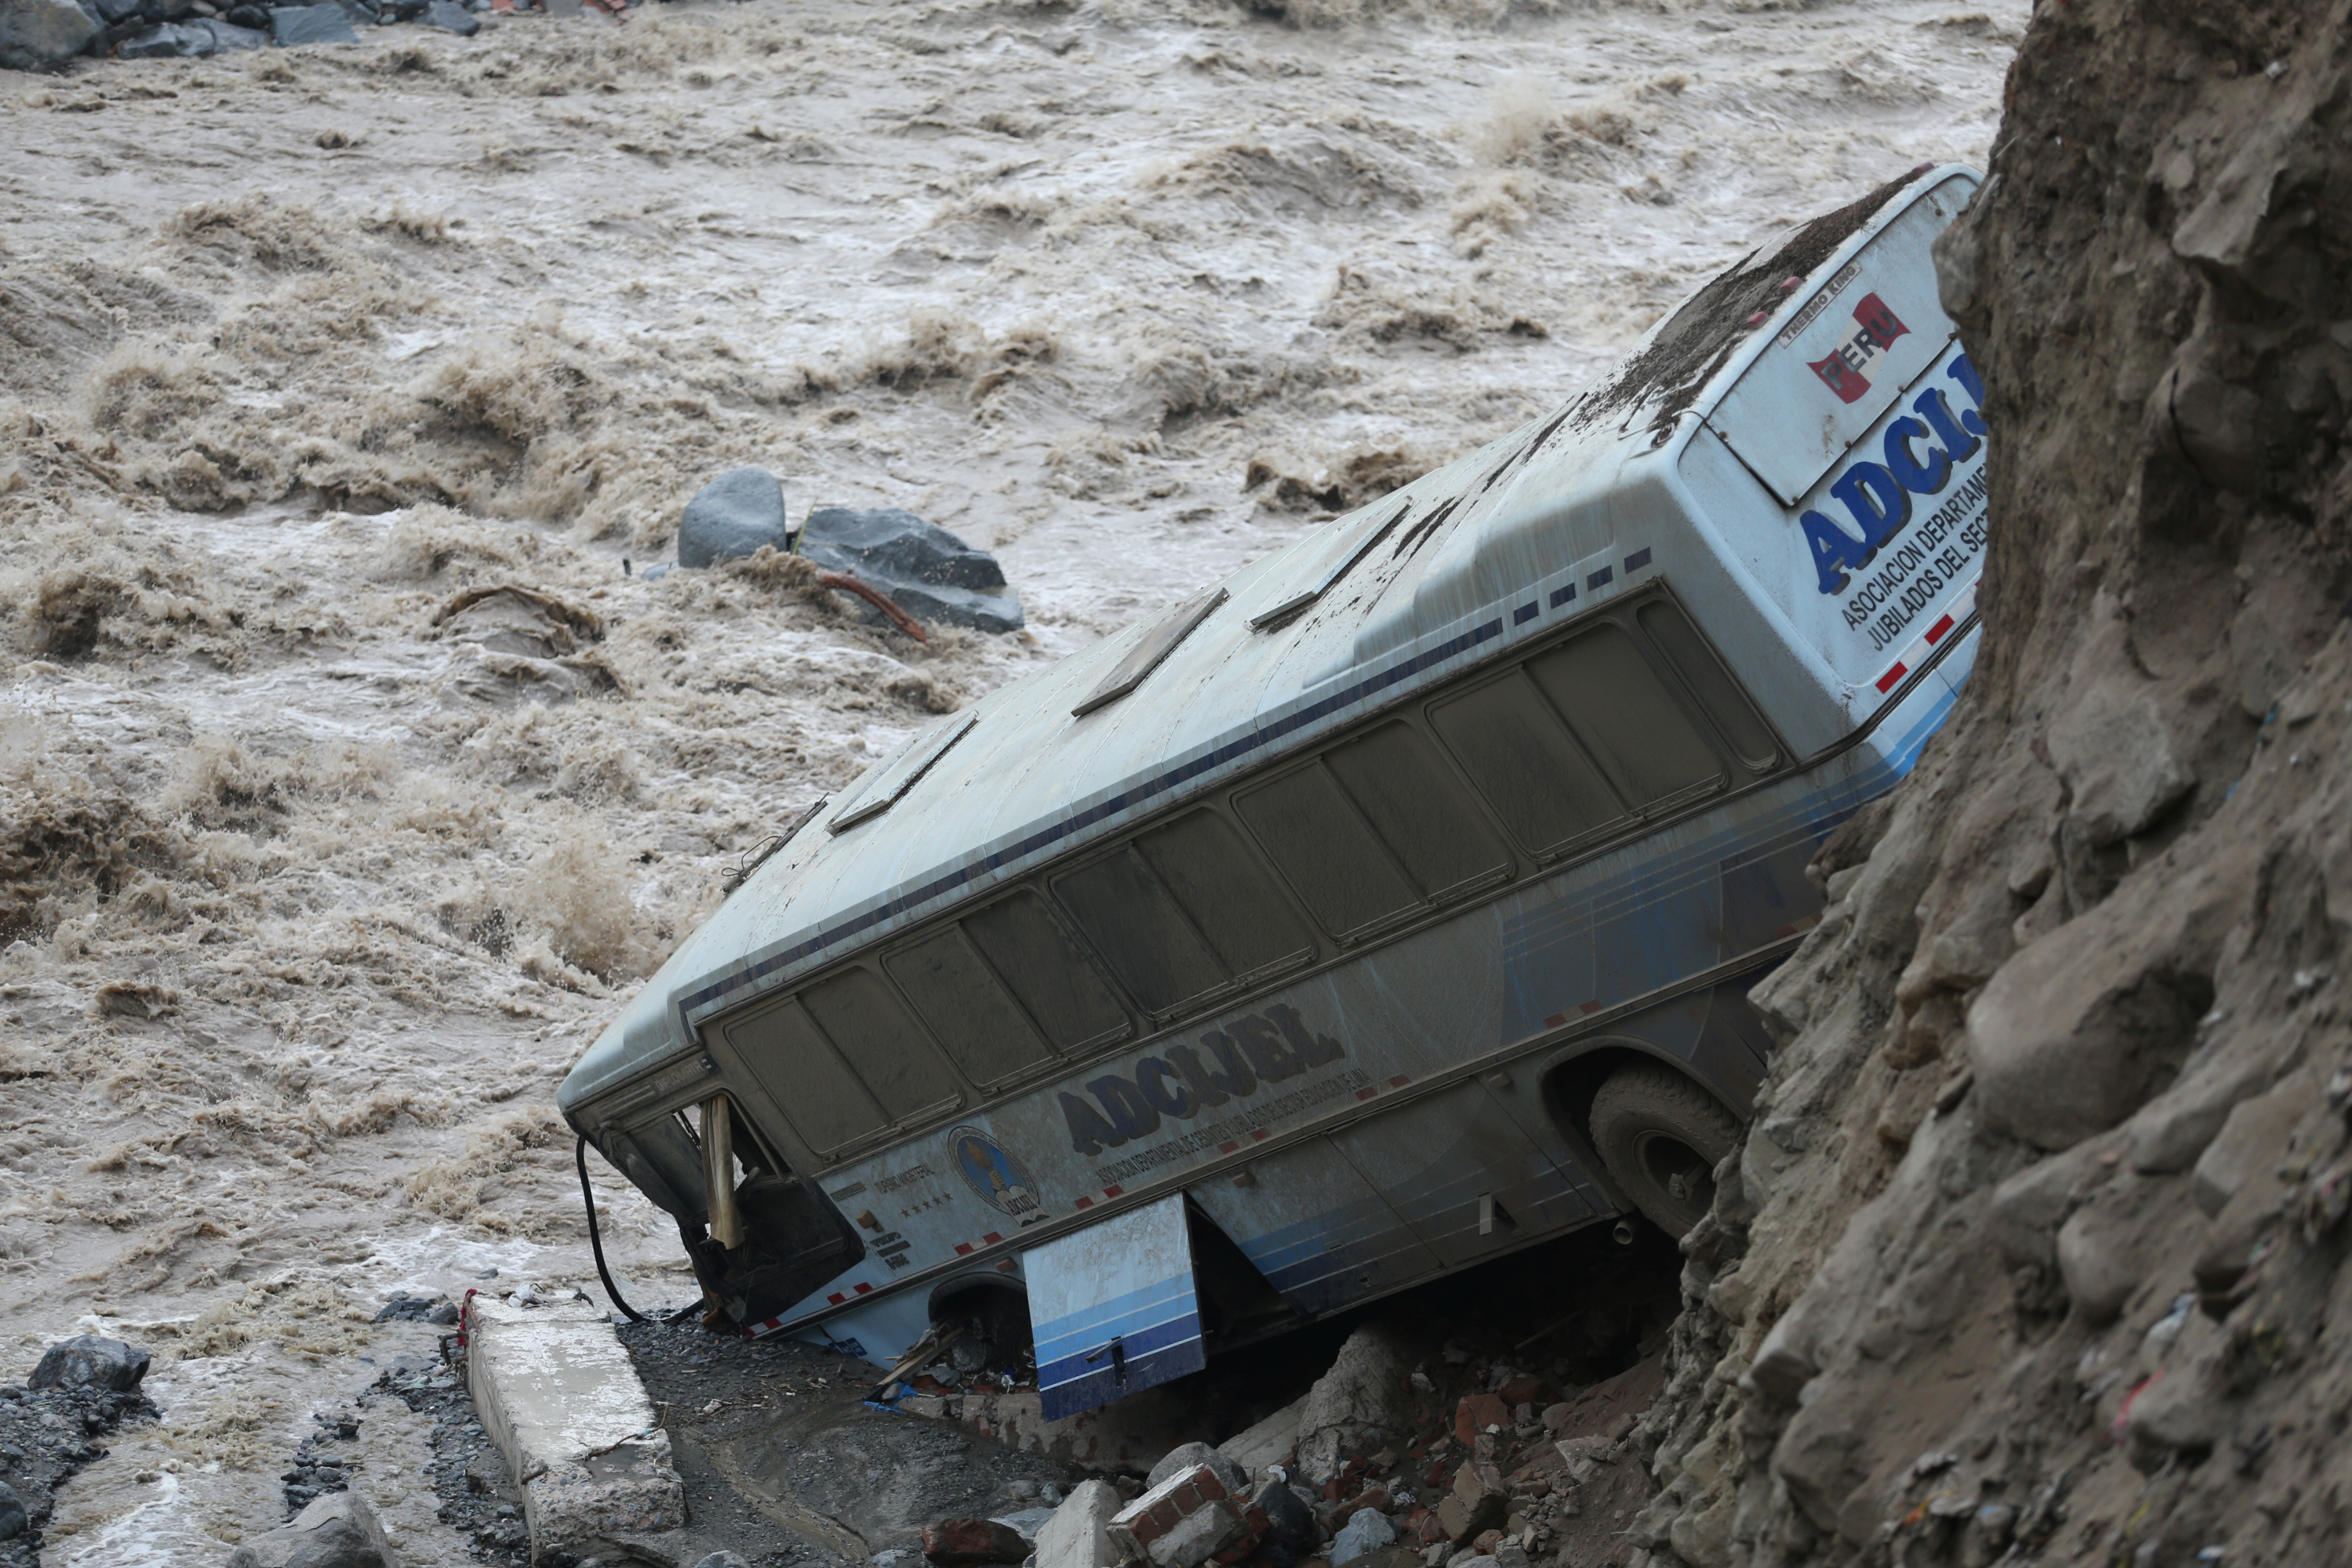 A bus is seen after a landslide and flood in Chosica, east of Lima, Peru March 16, 2017.